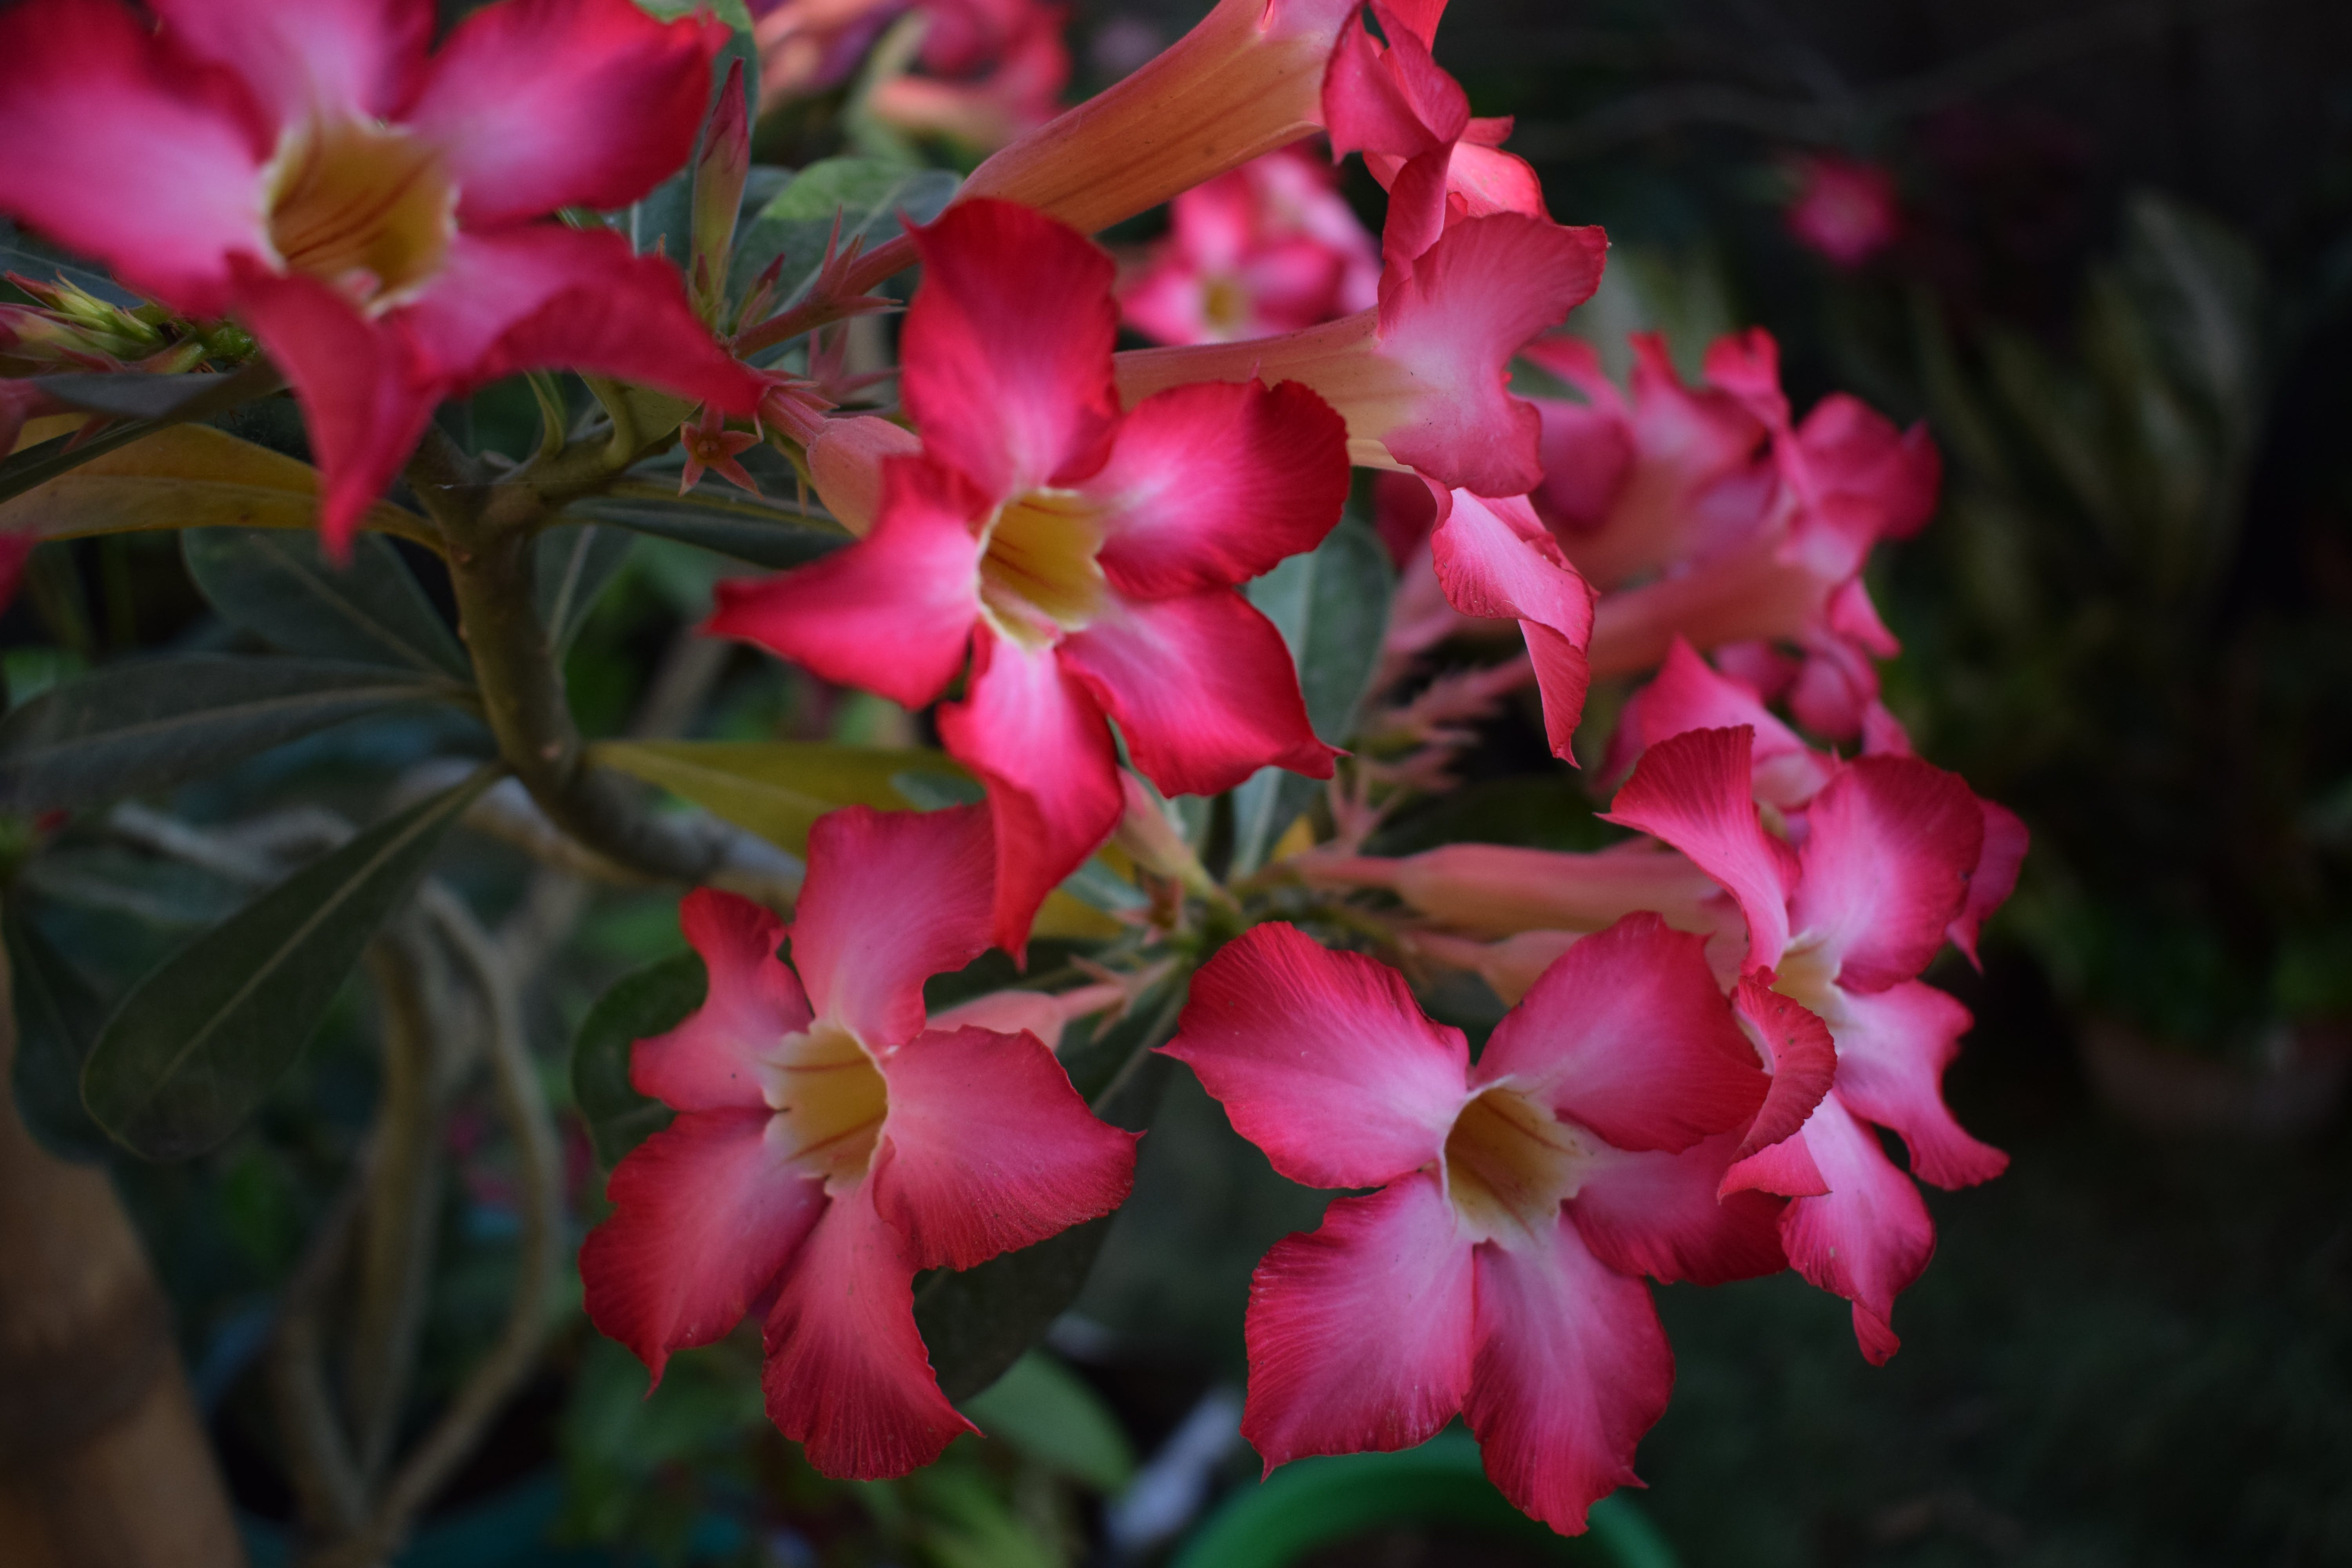 Free stock photo of beautiful flowers, flowers, pink flowers, red flowers